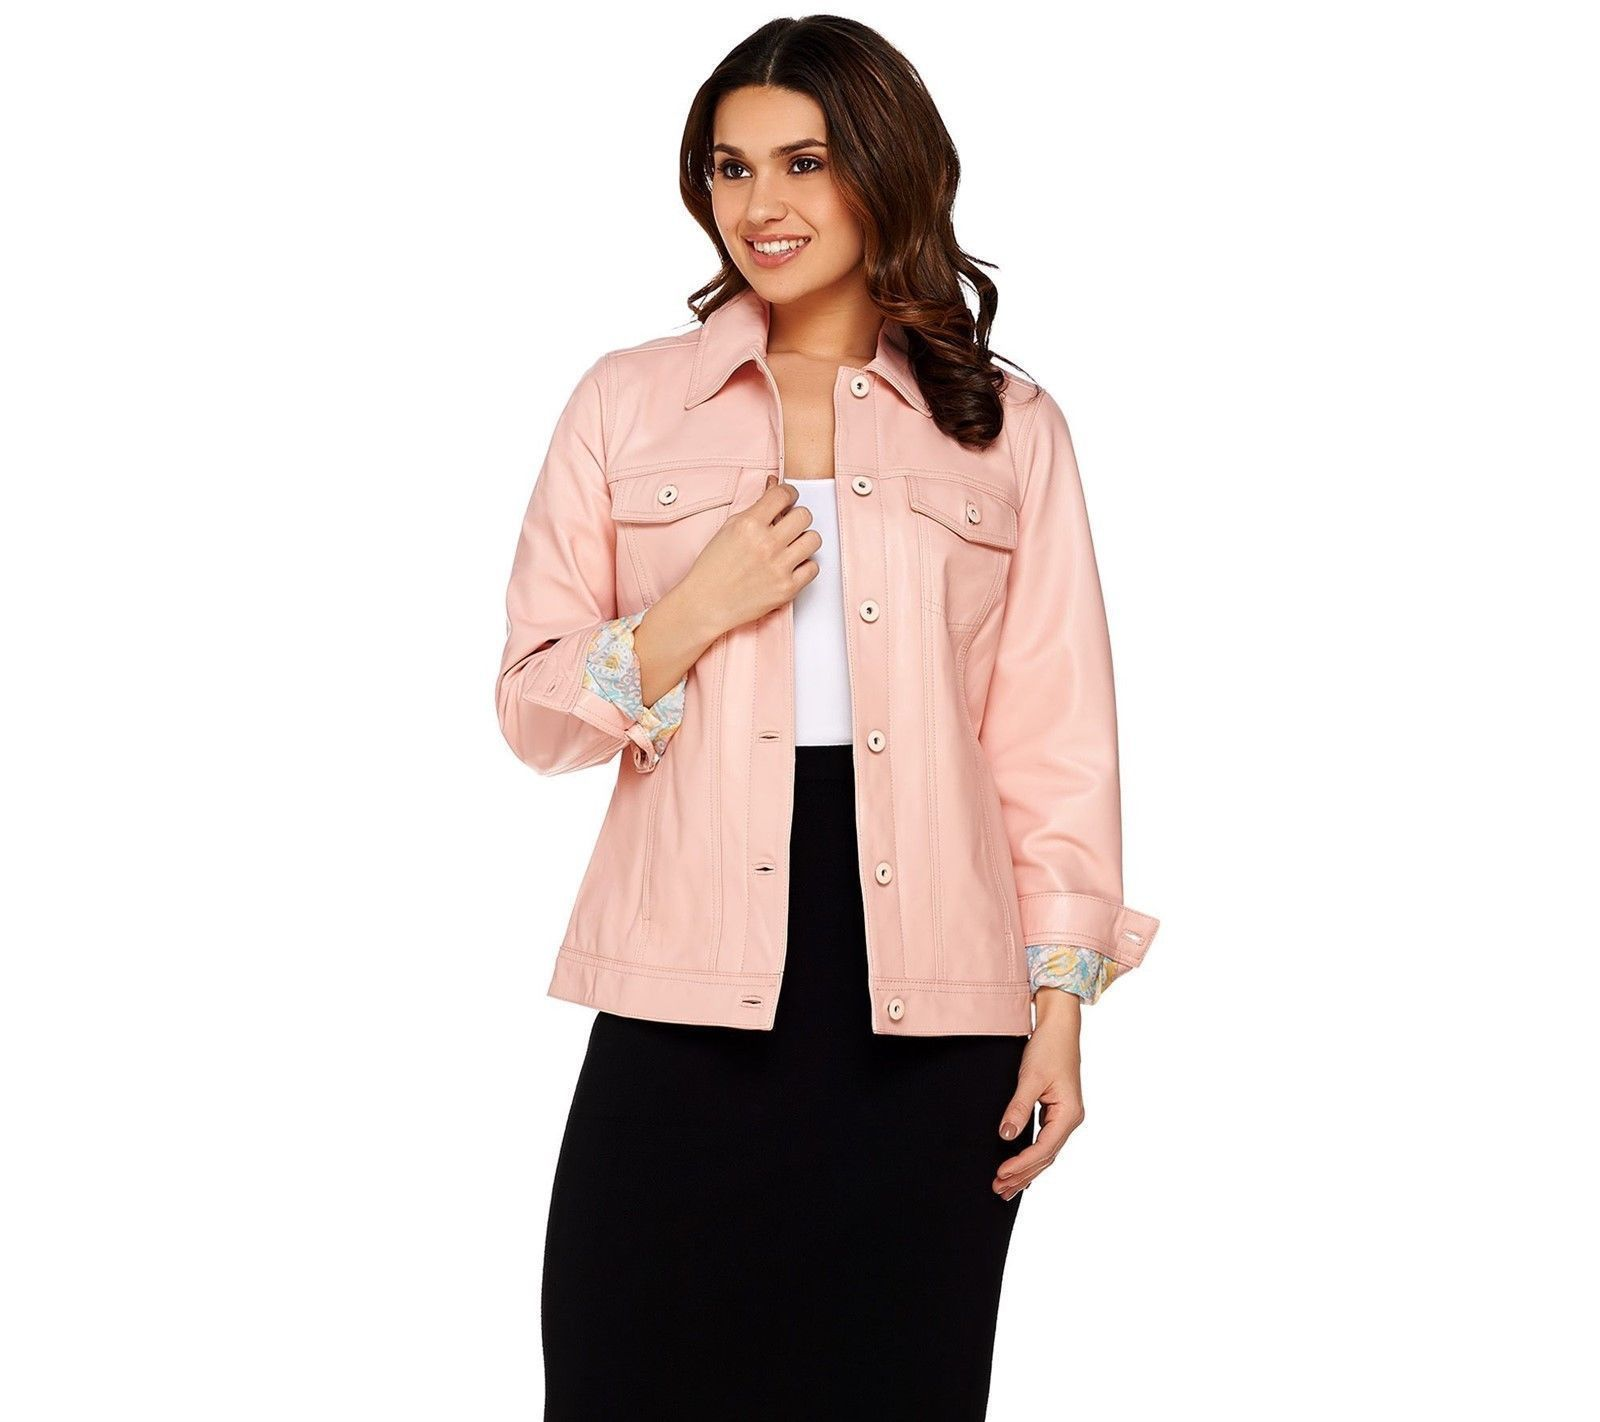 Denim & Co. Lamb Leather Jean Jacket, Shell Pink, Size XS, MSRP $289